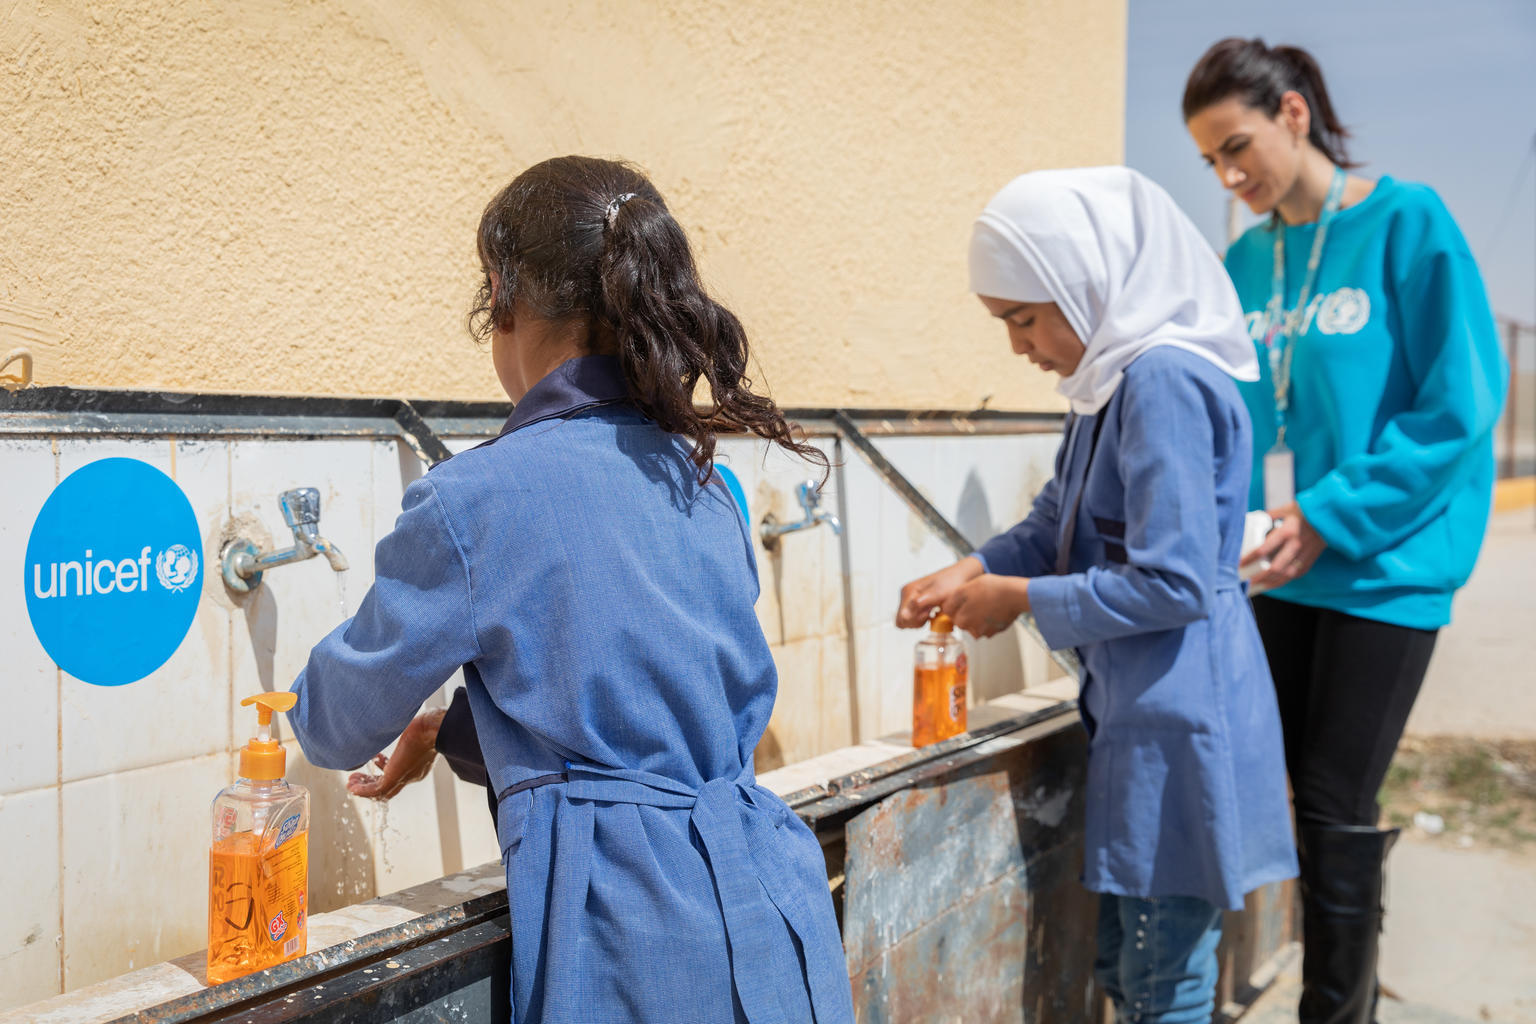 Students at the Al khader primary school in Jordan practice proper handwashing, one of the most effective ways to prevent COVID-19. UNICEF helped create an Environmental Action Club at the school and is working across Jordan to provide safe water